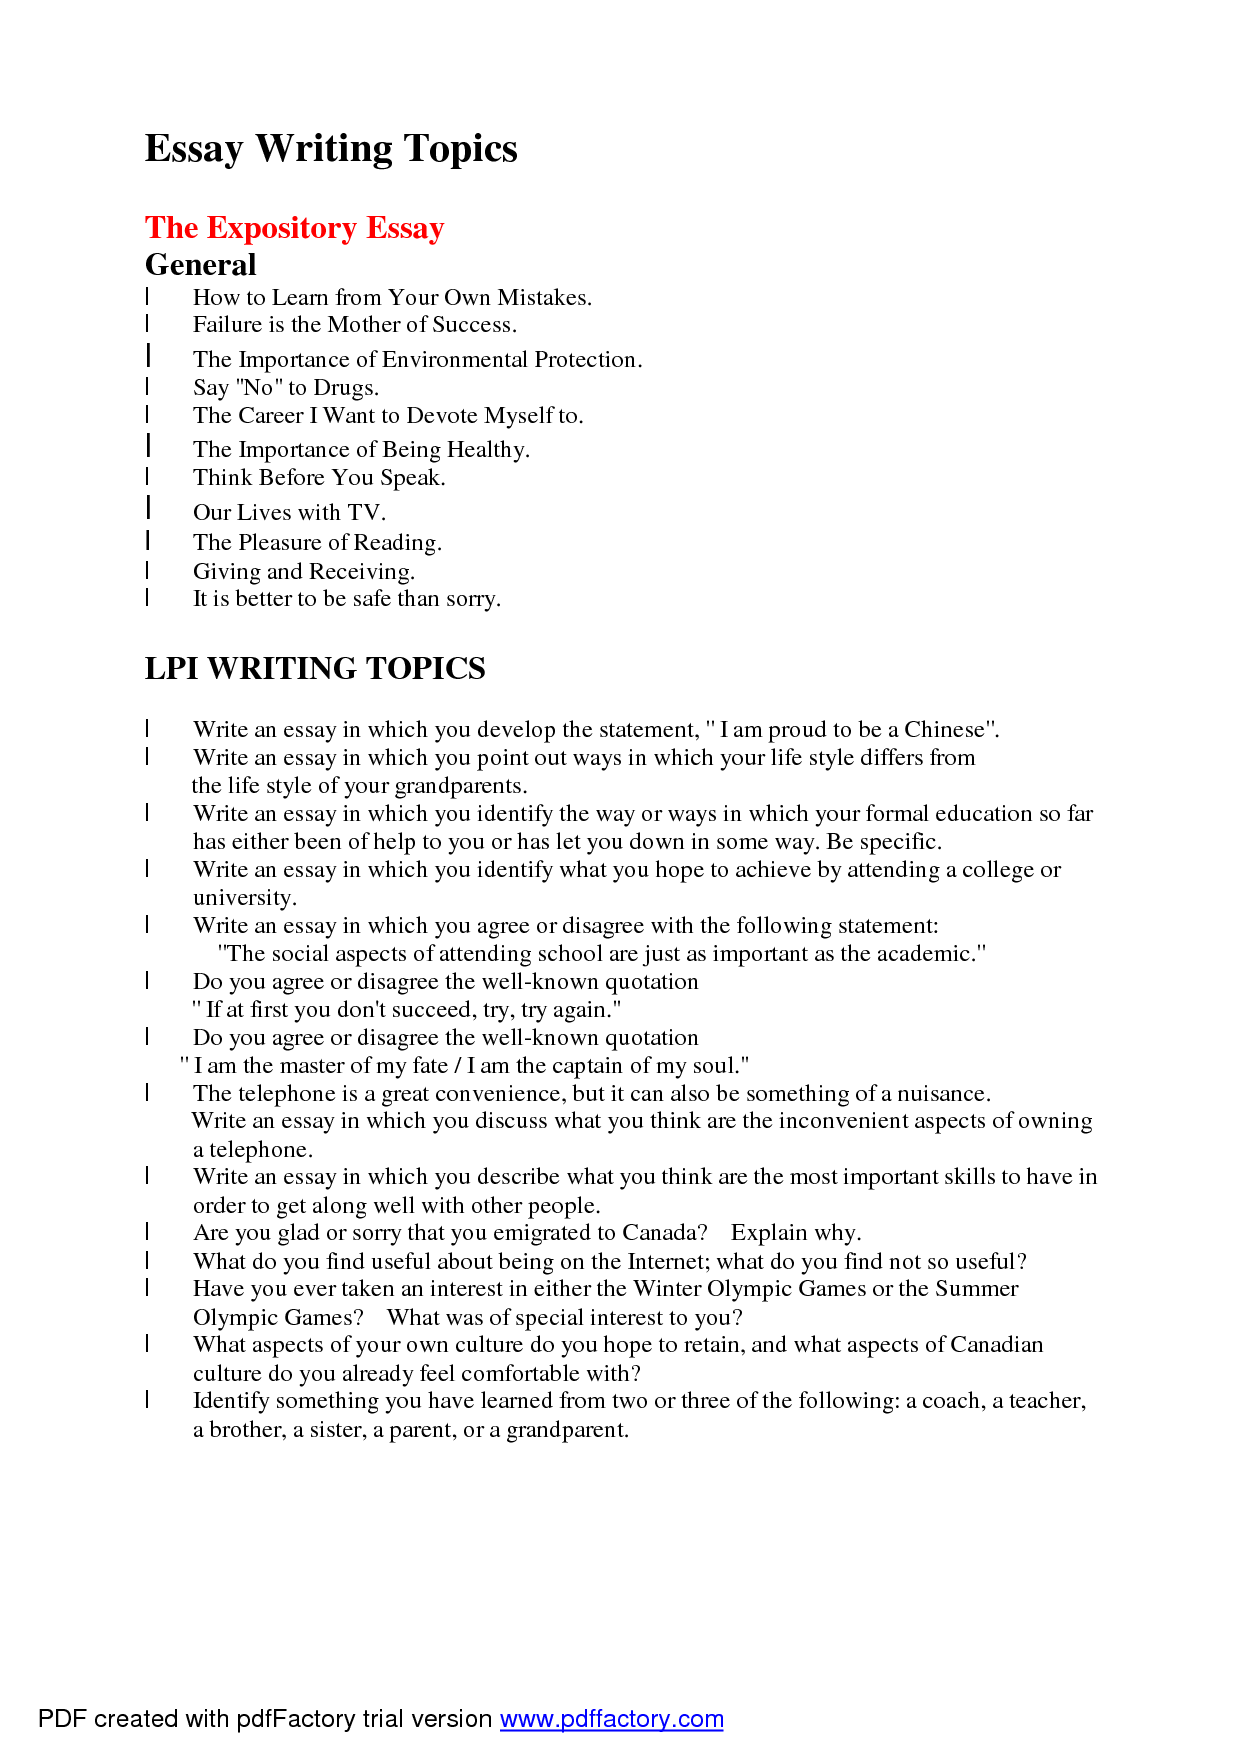 001 Essay Topics To Write About Arguable Good L An On Marvelous Easy Persuasive Essays Opinion Full